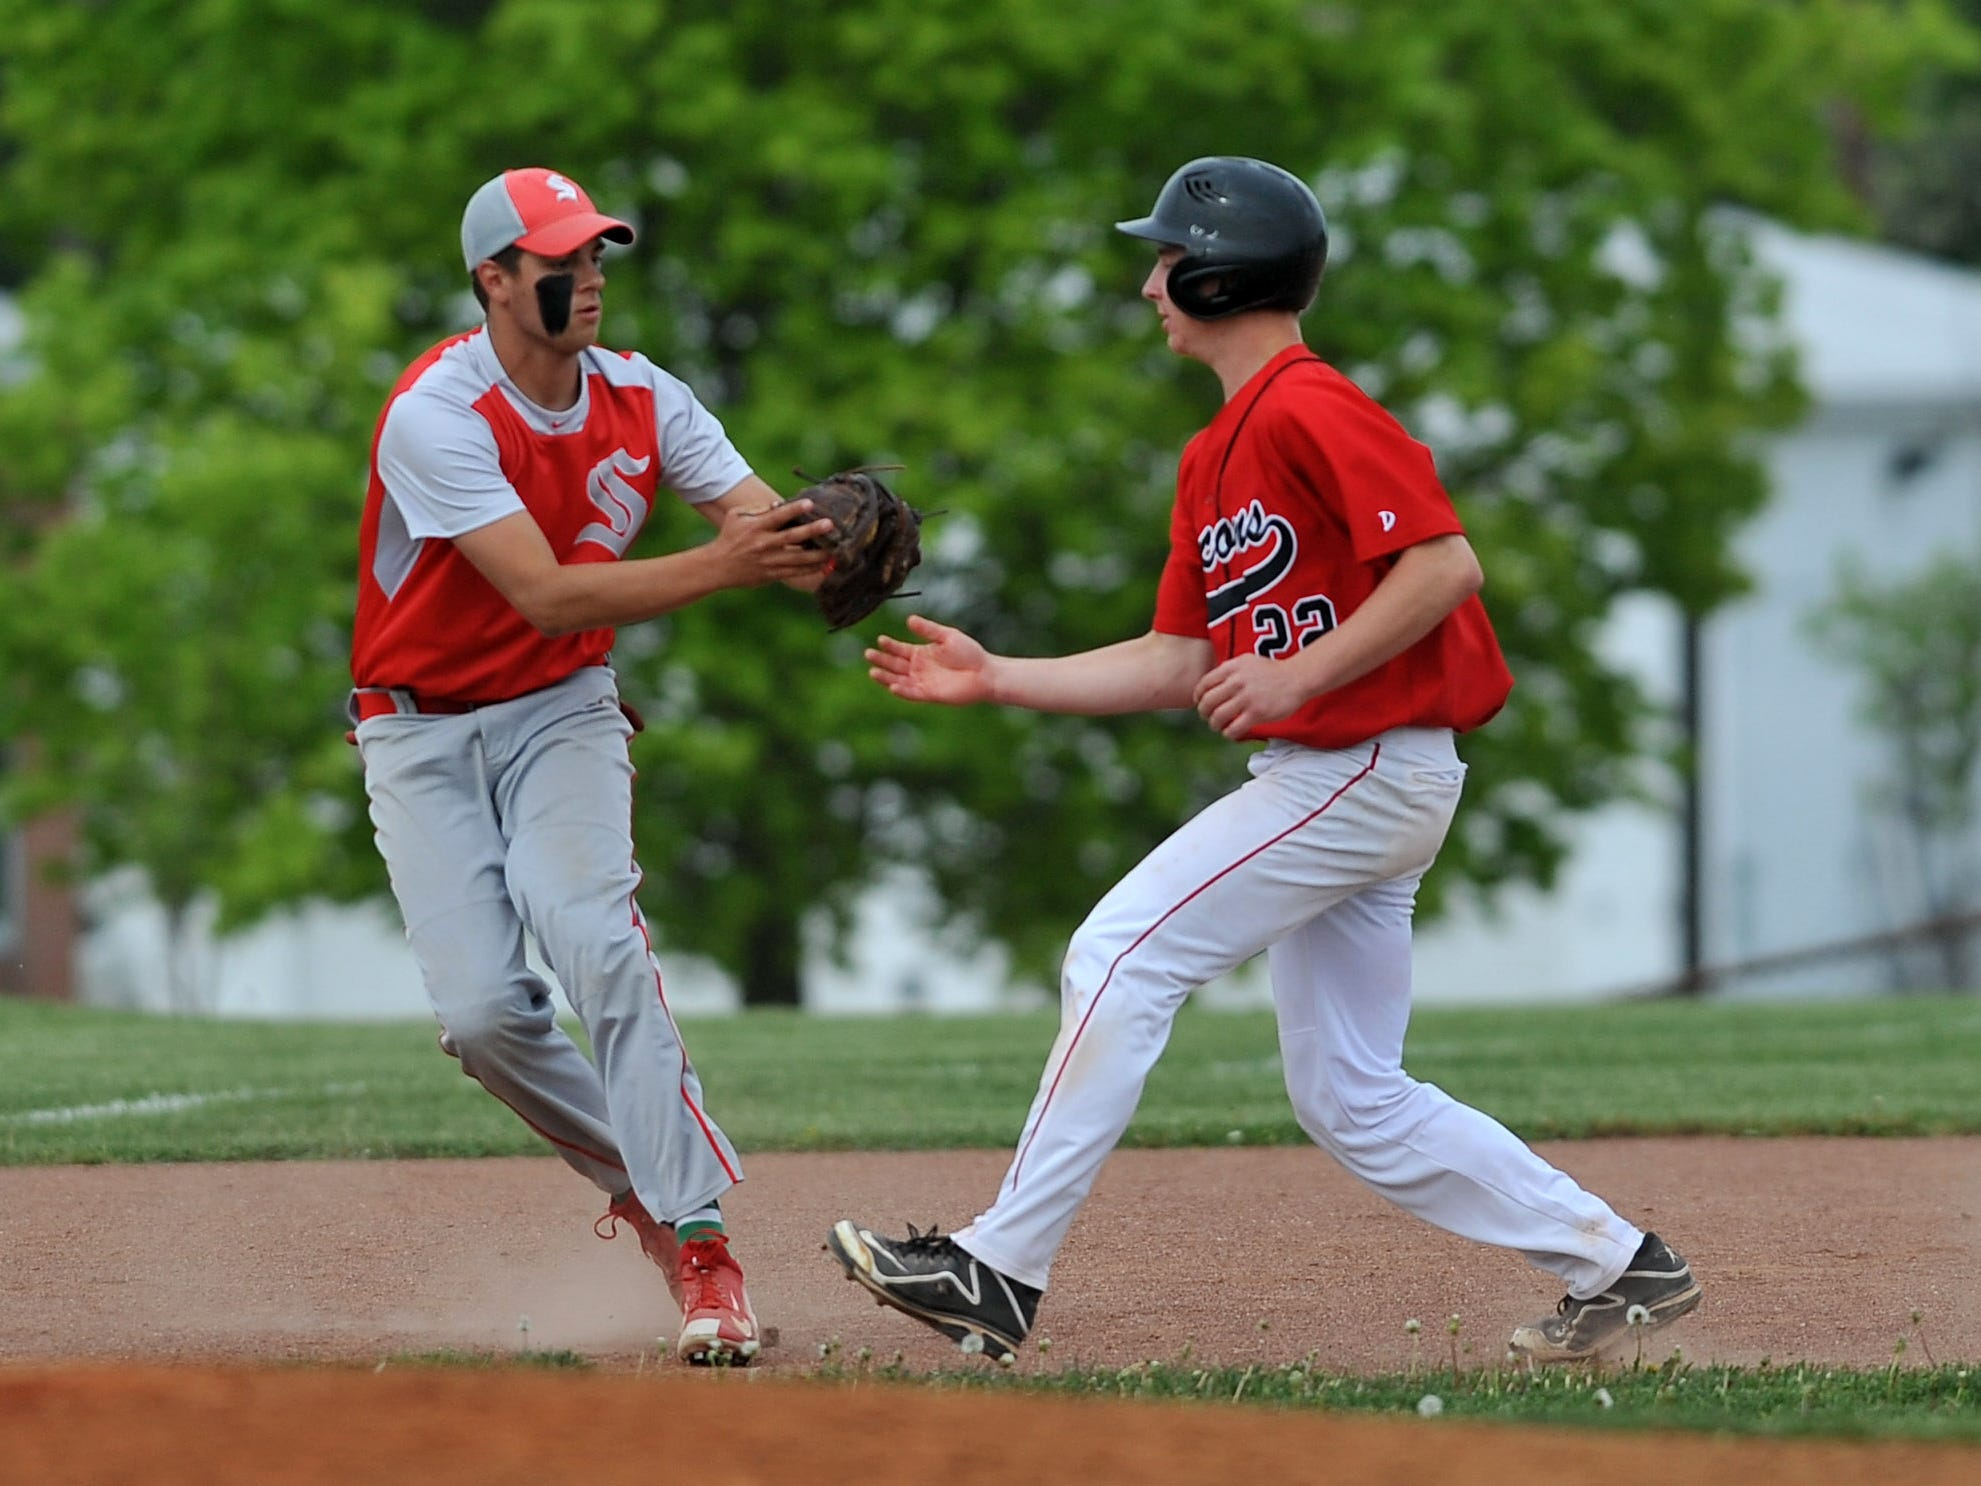 Sheridan third baseman Connor Dupler, left, tags out Fairfield Union's Hayden Price during Thursday's game at Fairfield Union High School in Rushville. The Falcons lost 3-2 to the Generals in eight innings.